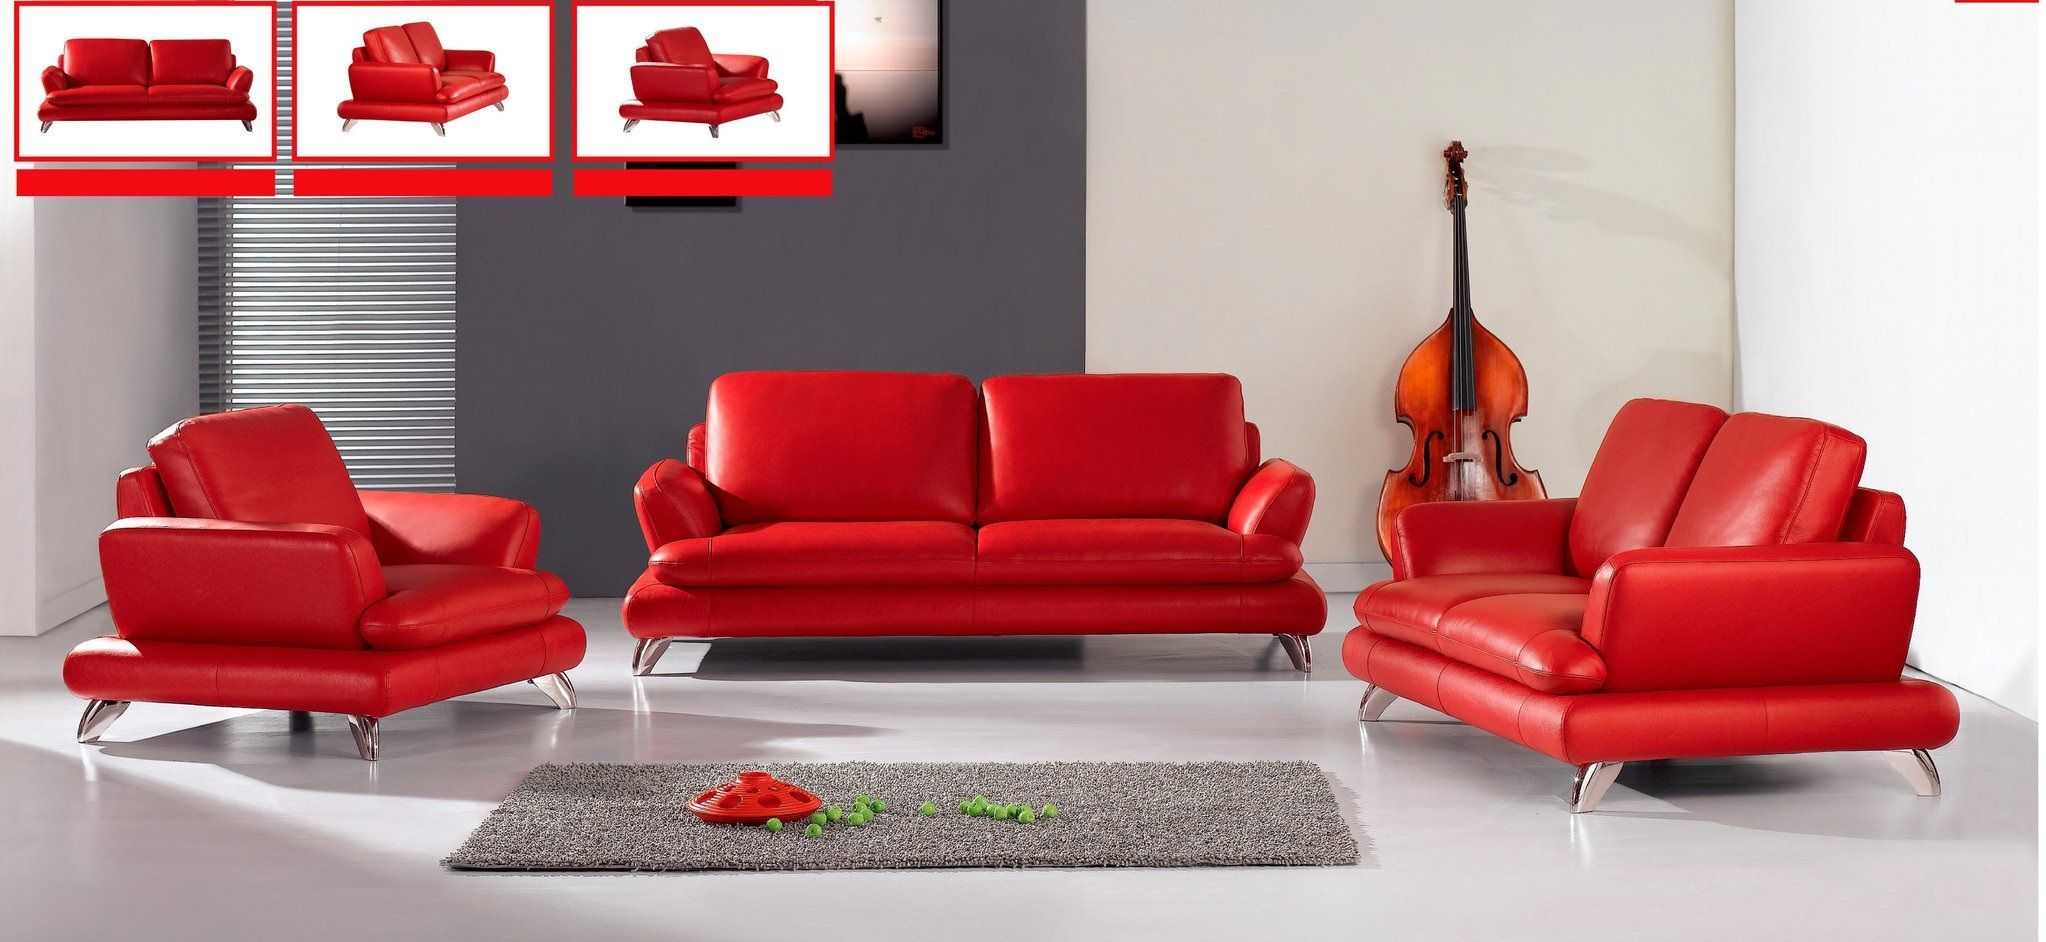 Contemporary Red Leather Sofa Set In 2020 Modern Leather Sofa Red Leather Sofa Leather Sofa Set